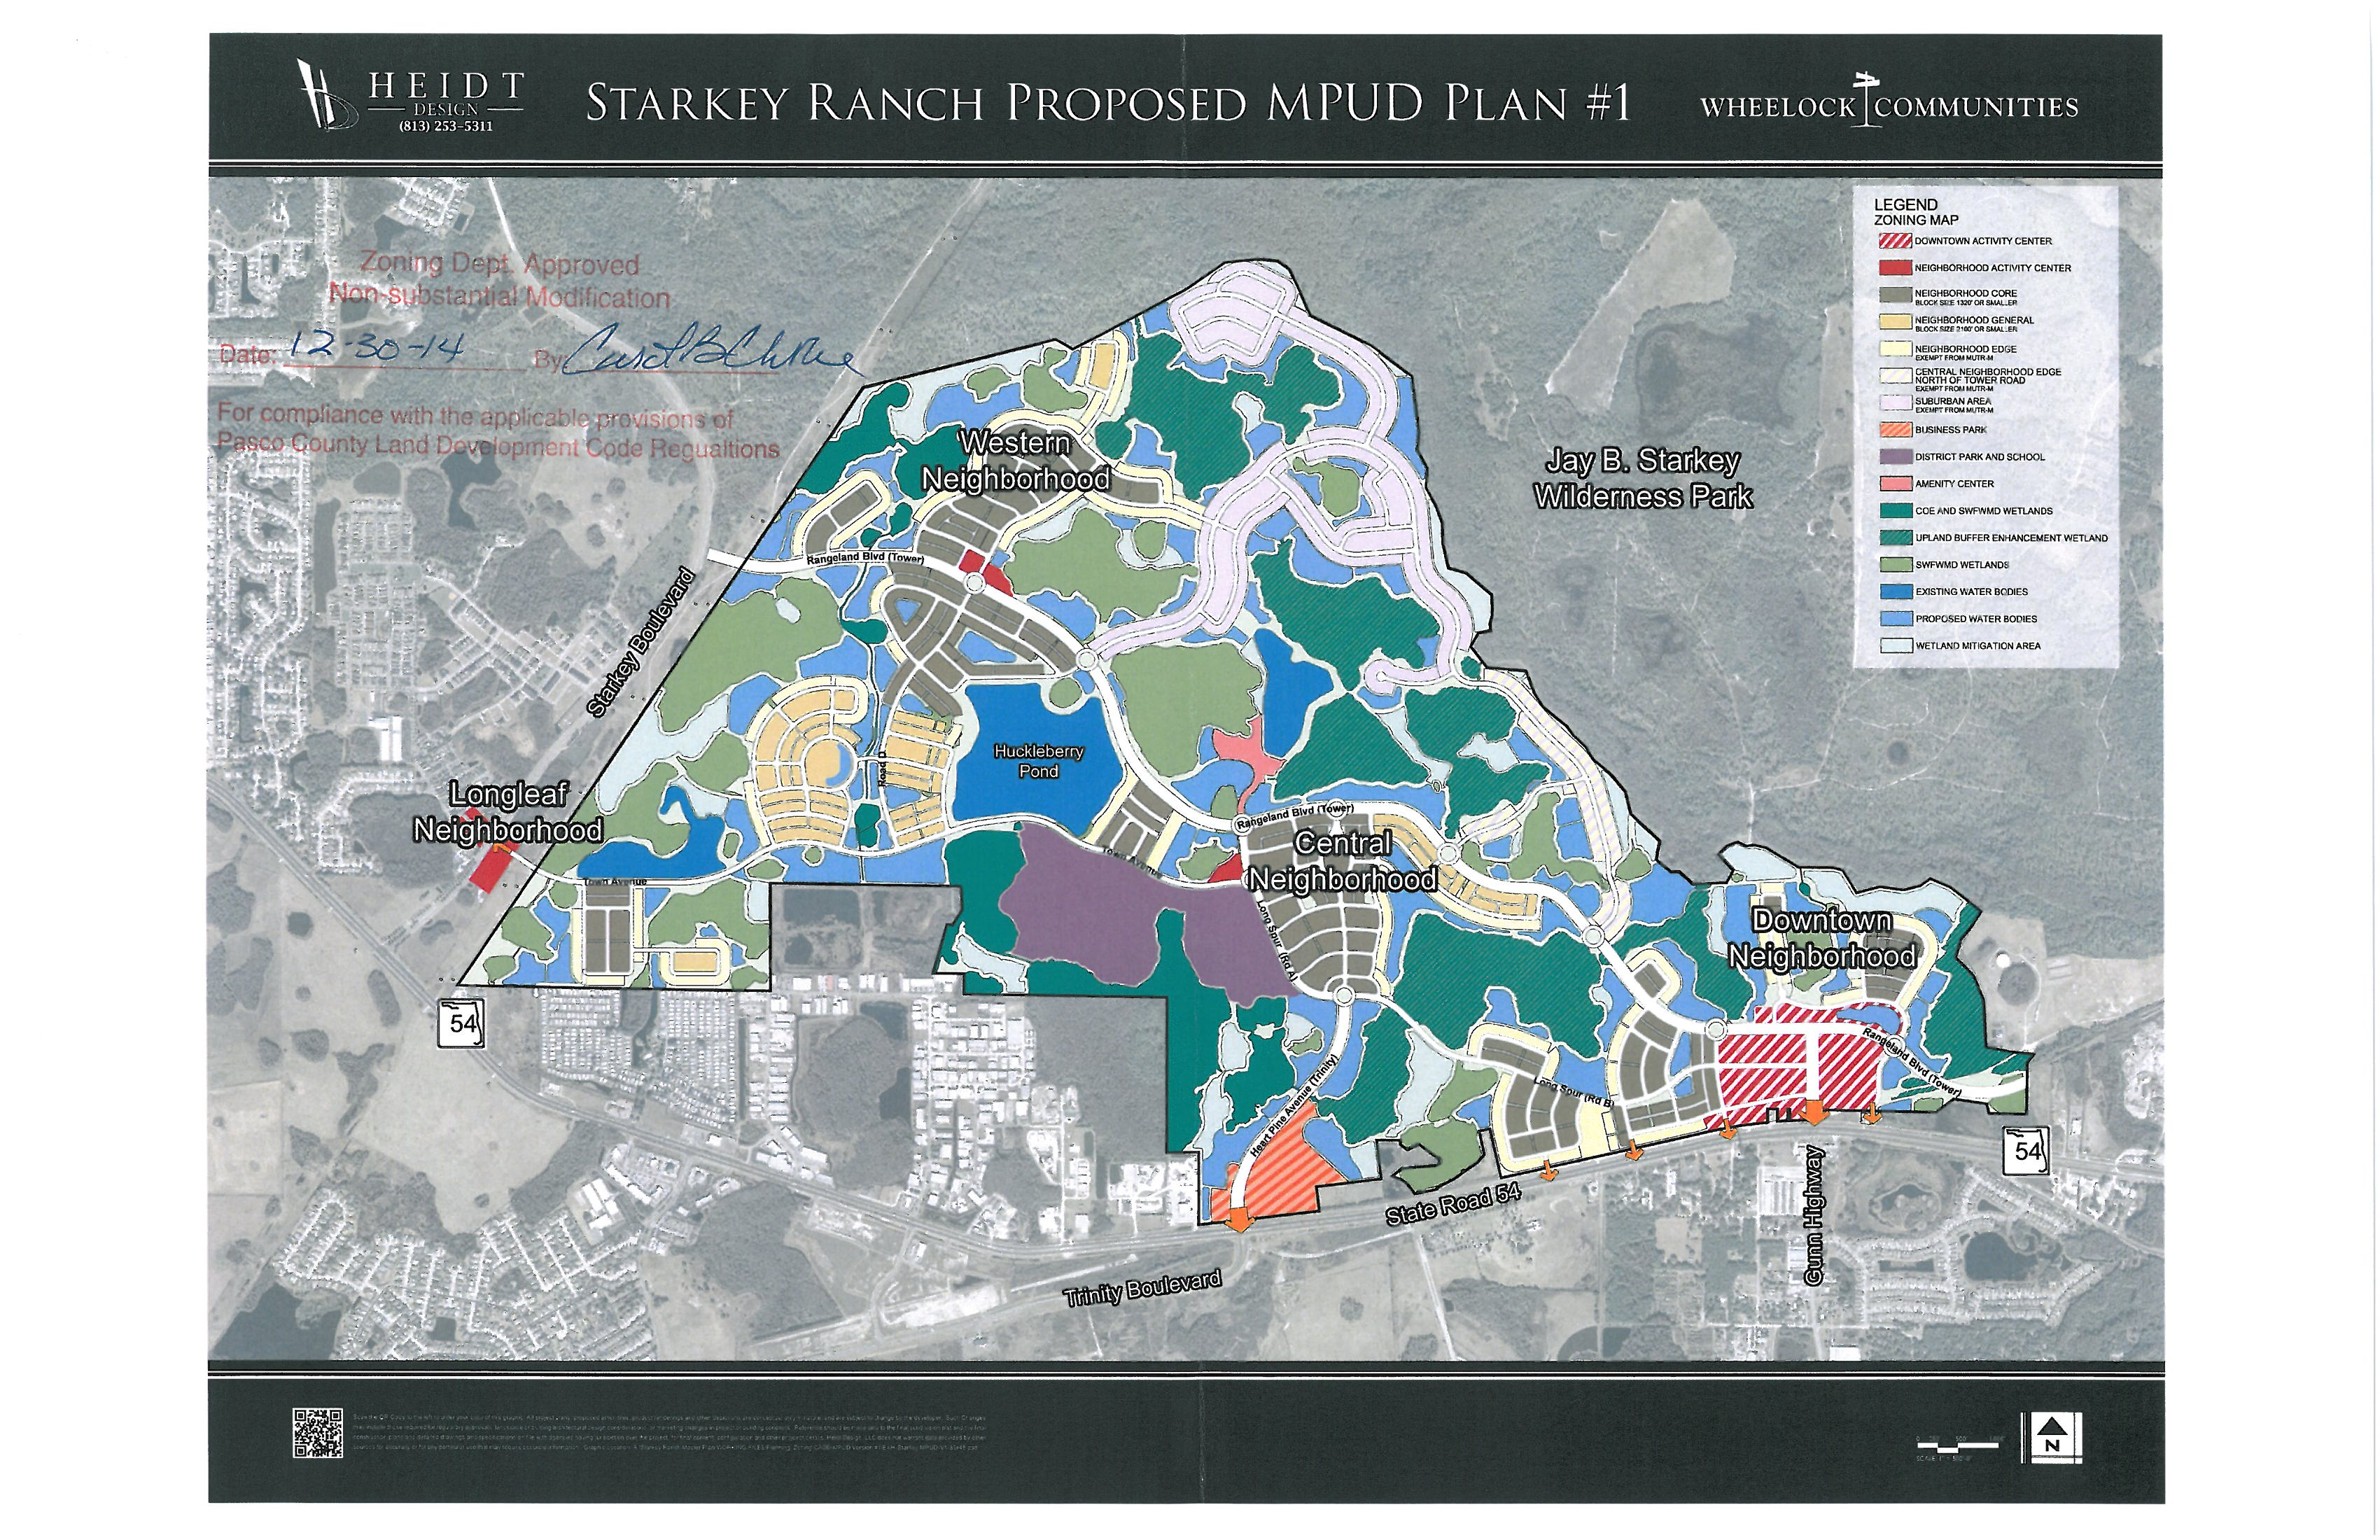 Starkey Ranch Proposed MPUD